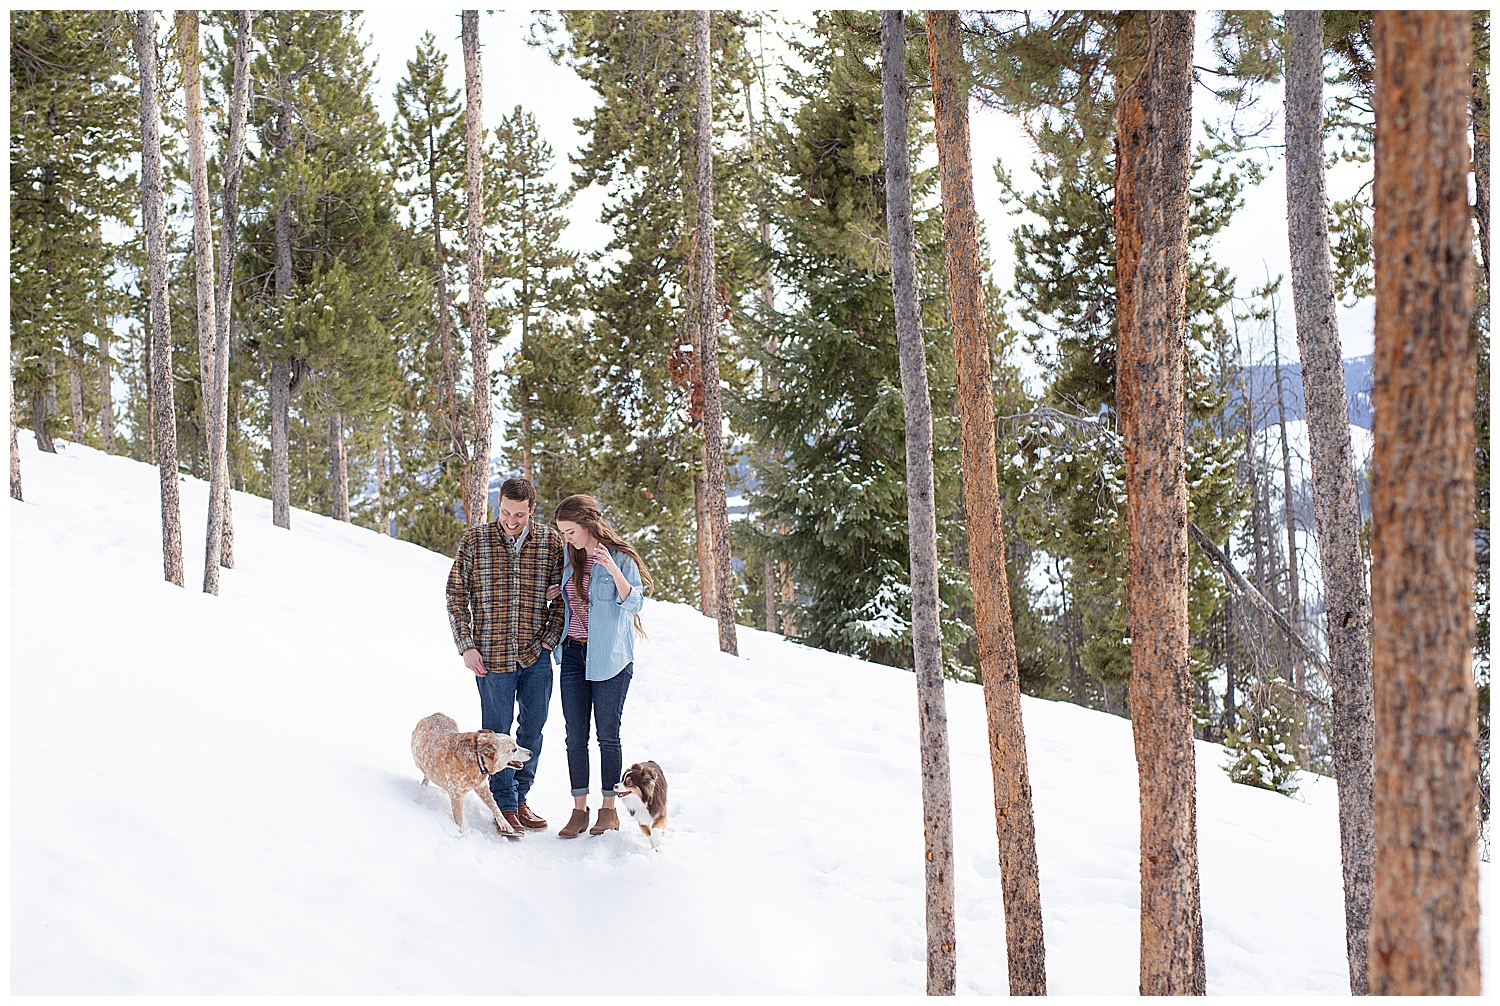 Winter-Breckenridge-Colorado-Engagement-Session_0006.jpg